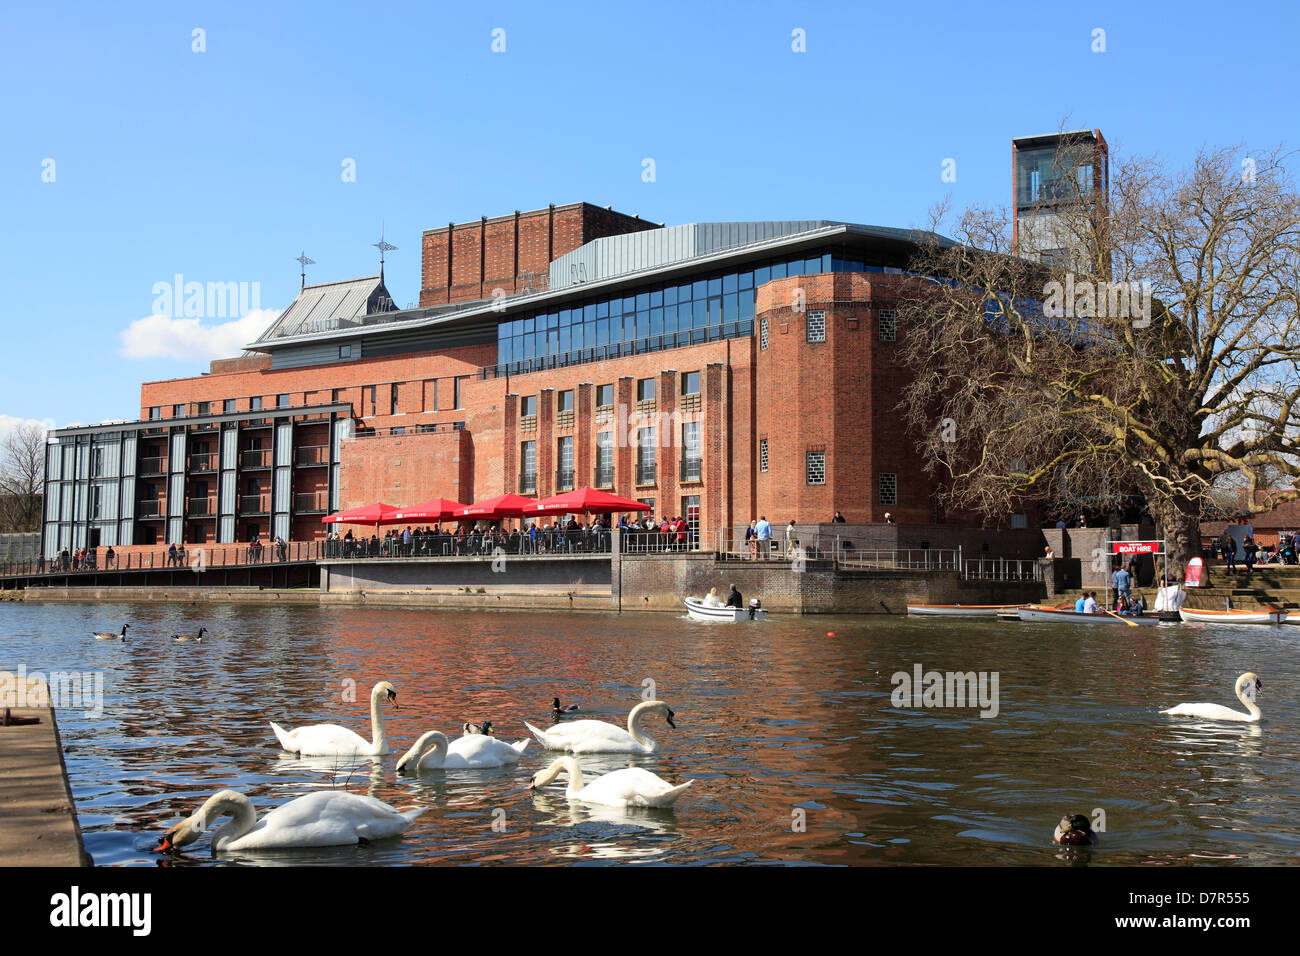 Royal Shakespeare Company Theater in Stratford on Avon England. Stockbild